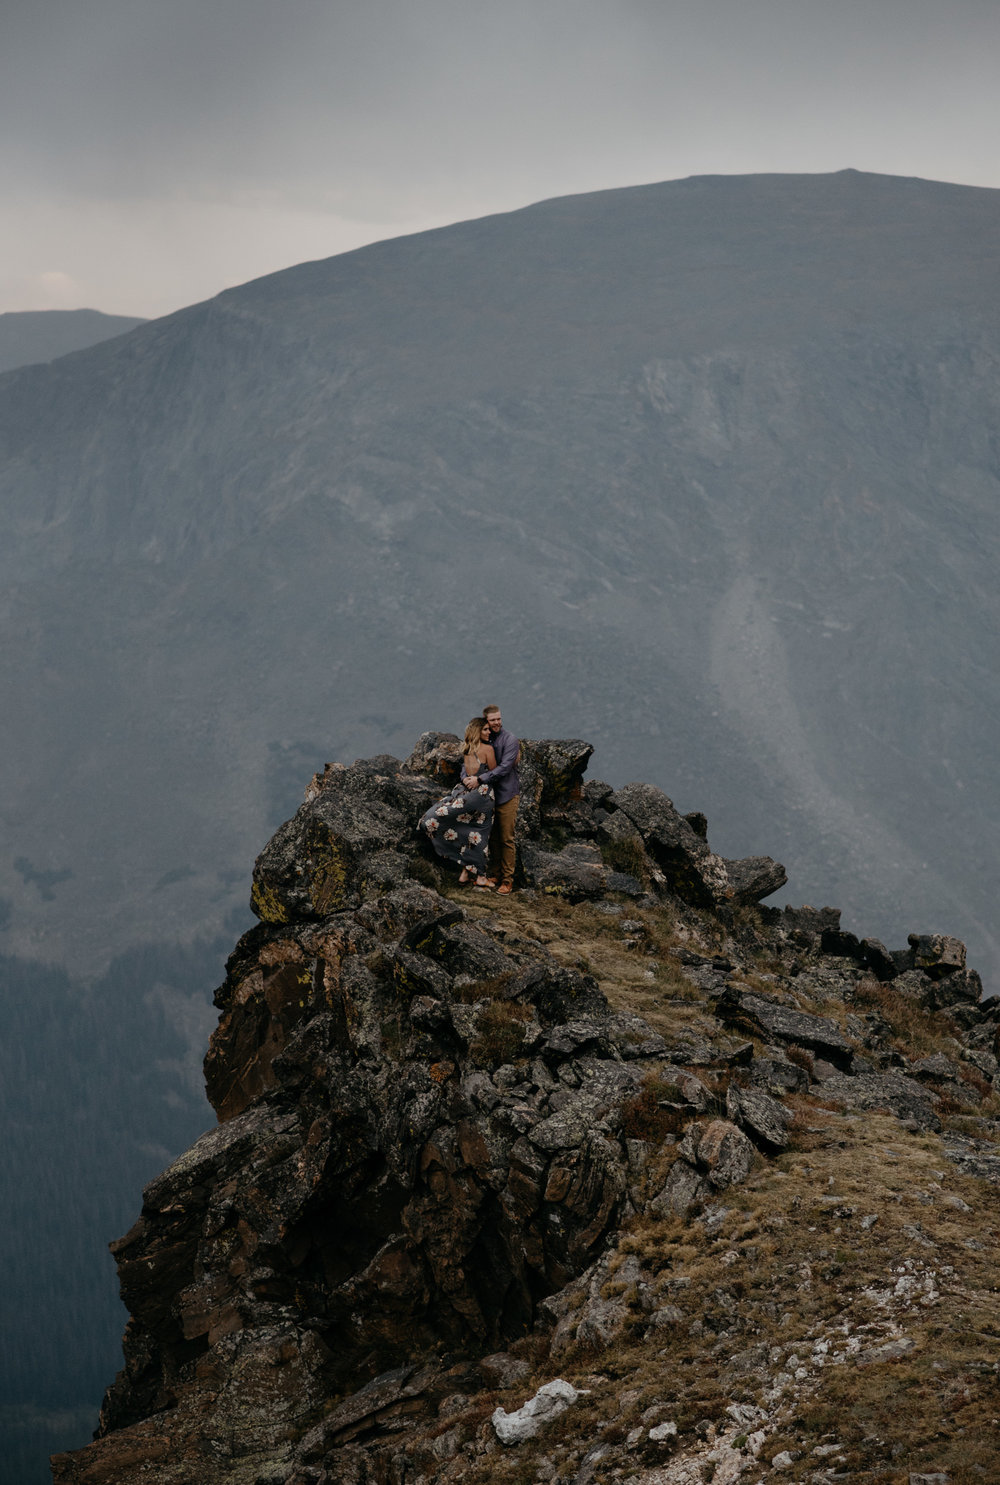 Adventure elopement in Rocky Mountain National Park on Trail Ridge Road. Colorado based mountain elopement an wedding photographer, Alyssa Reinhold.